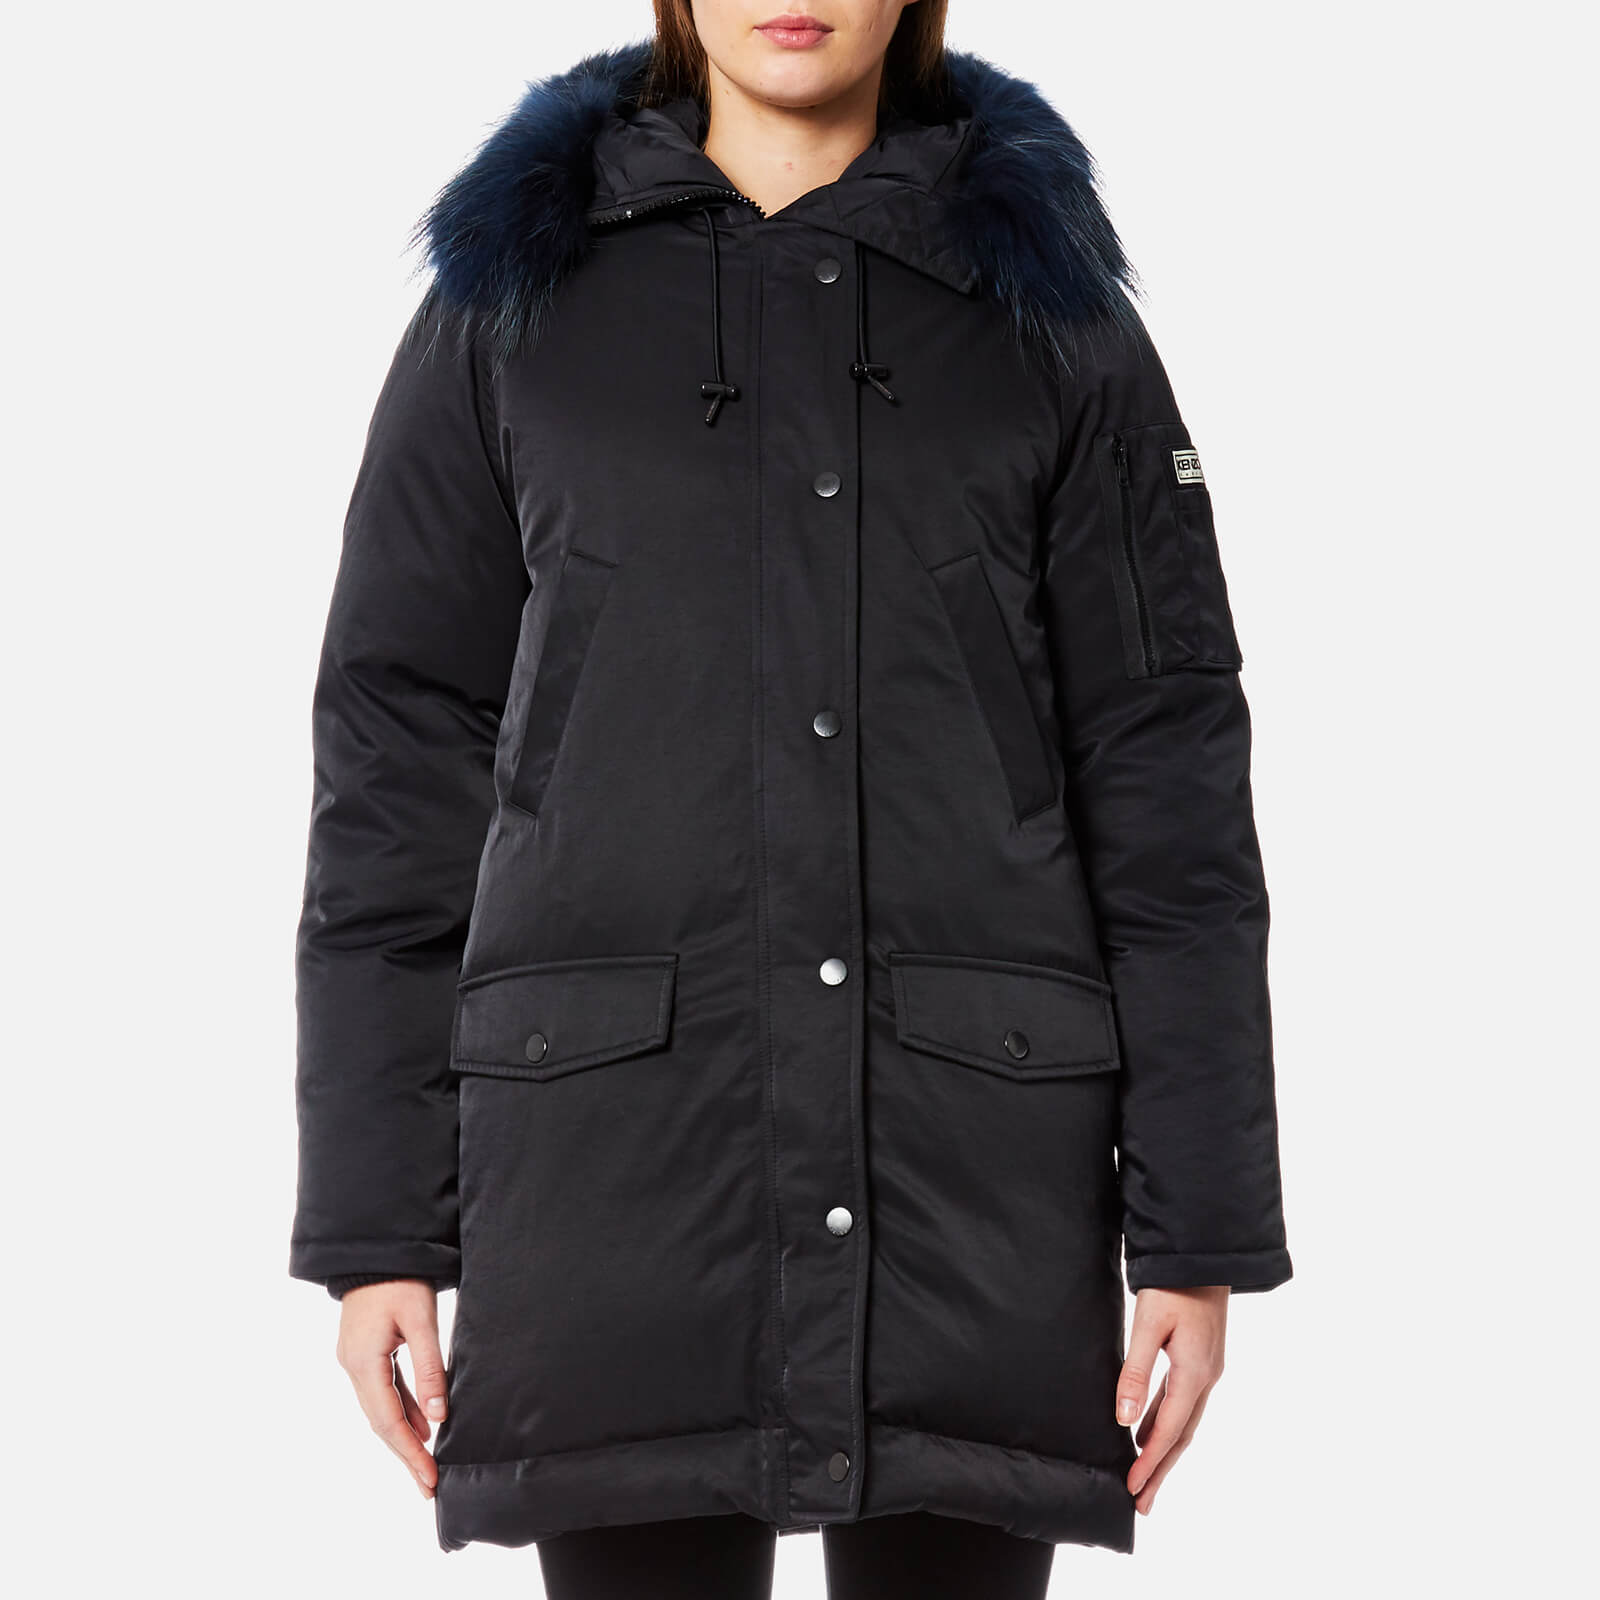 1d823dbd KENZO Women's Technical Outerwear Nylon Hooded Parka Coat - Black - Free UK  Delivery over £50